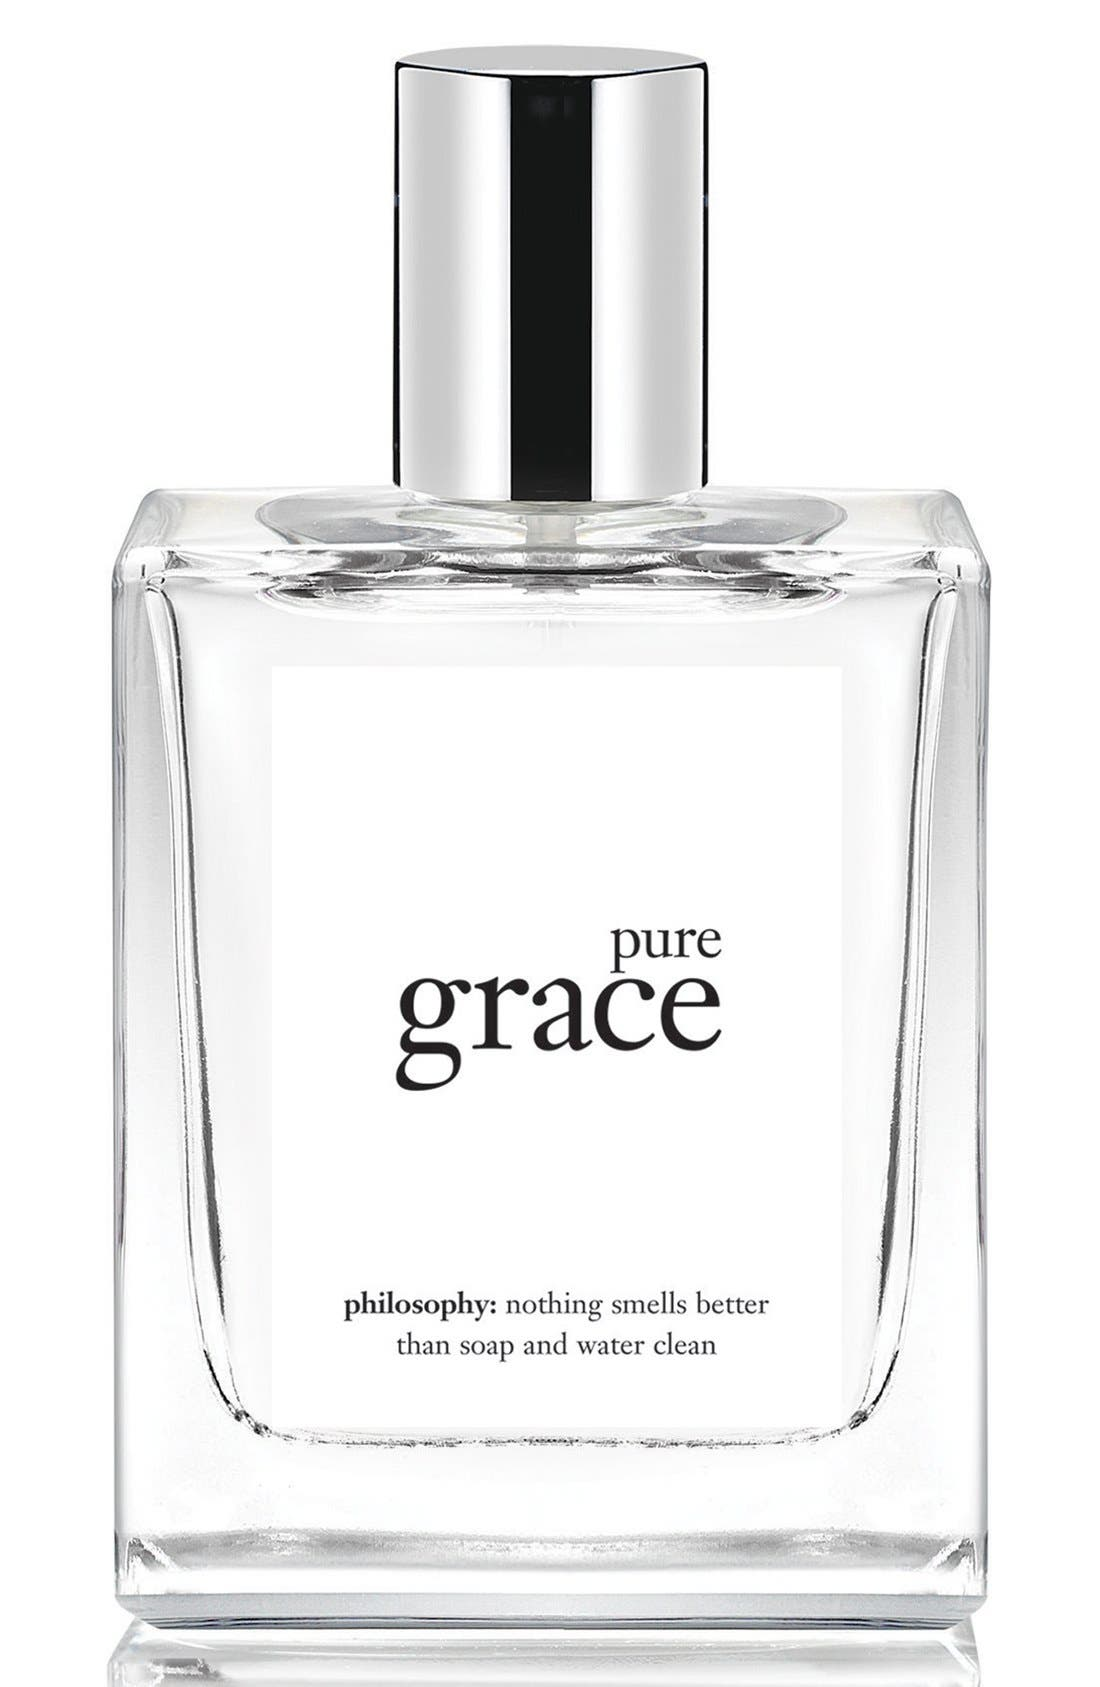 philosophy 'pure grace' spray fragrance